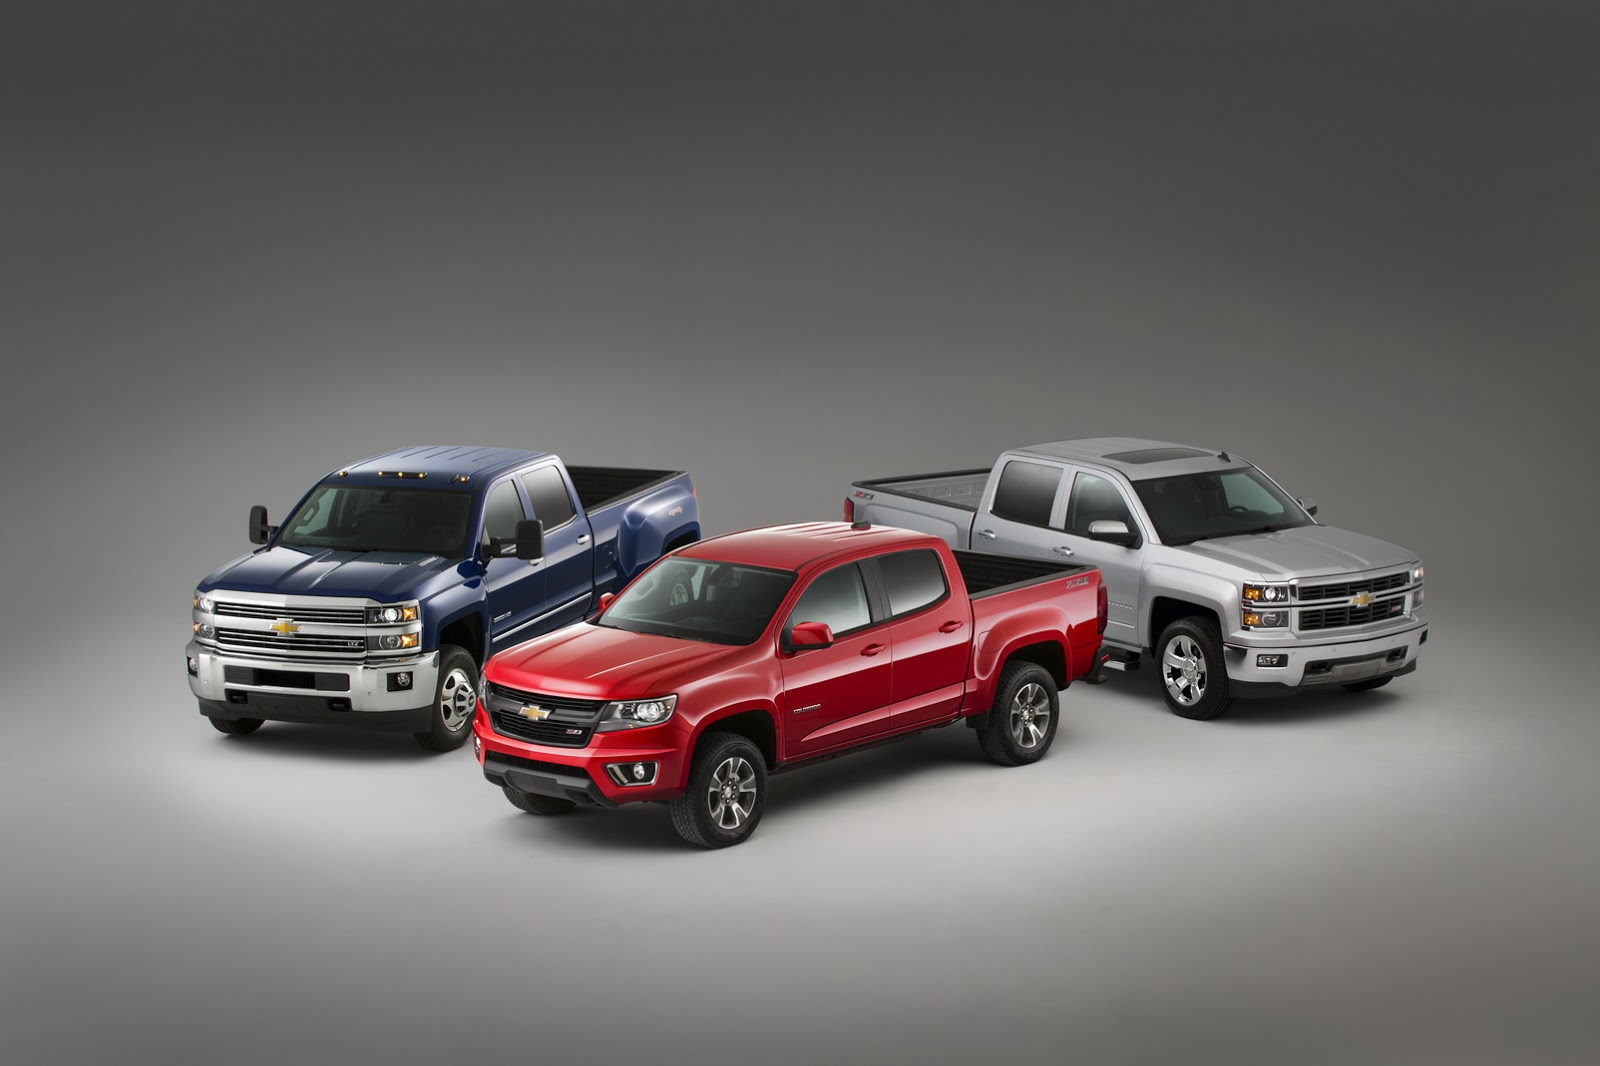 Chevrolet Will Let You in a 2015 Colorado from as Low as $20,995